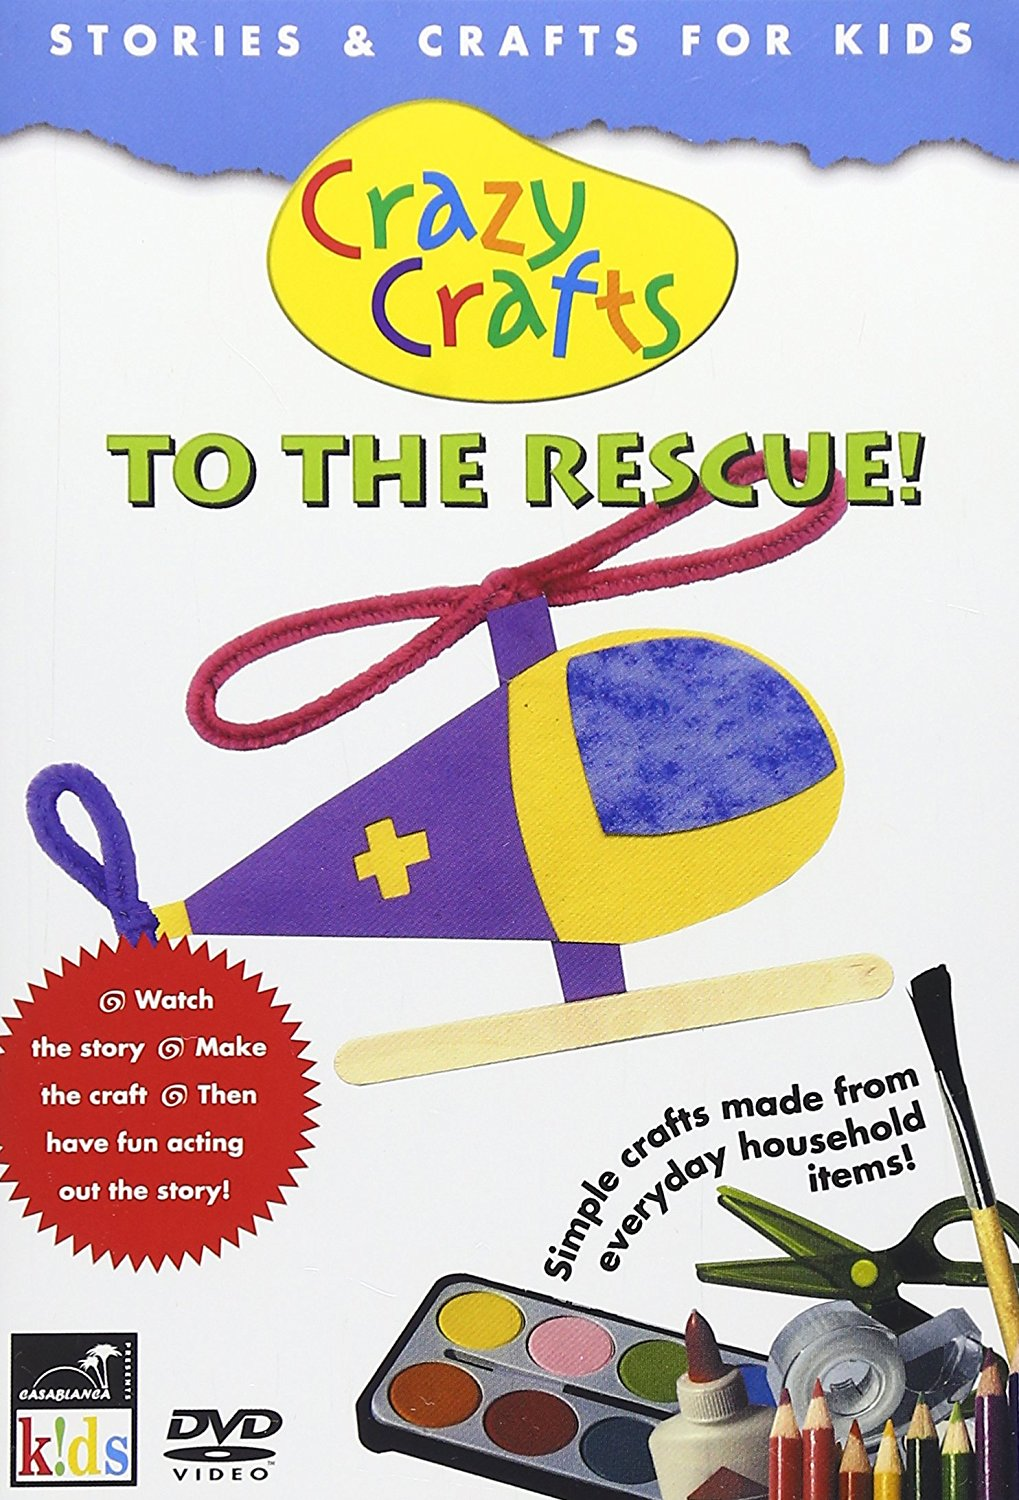 Crazy Crafts To The Rescue